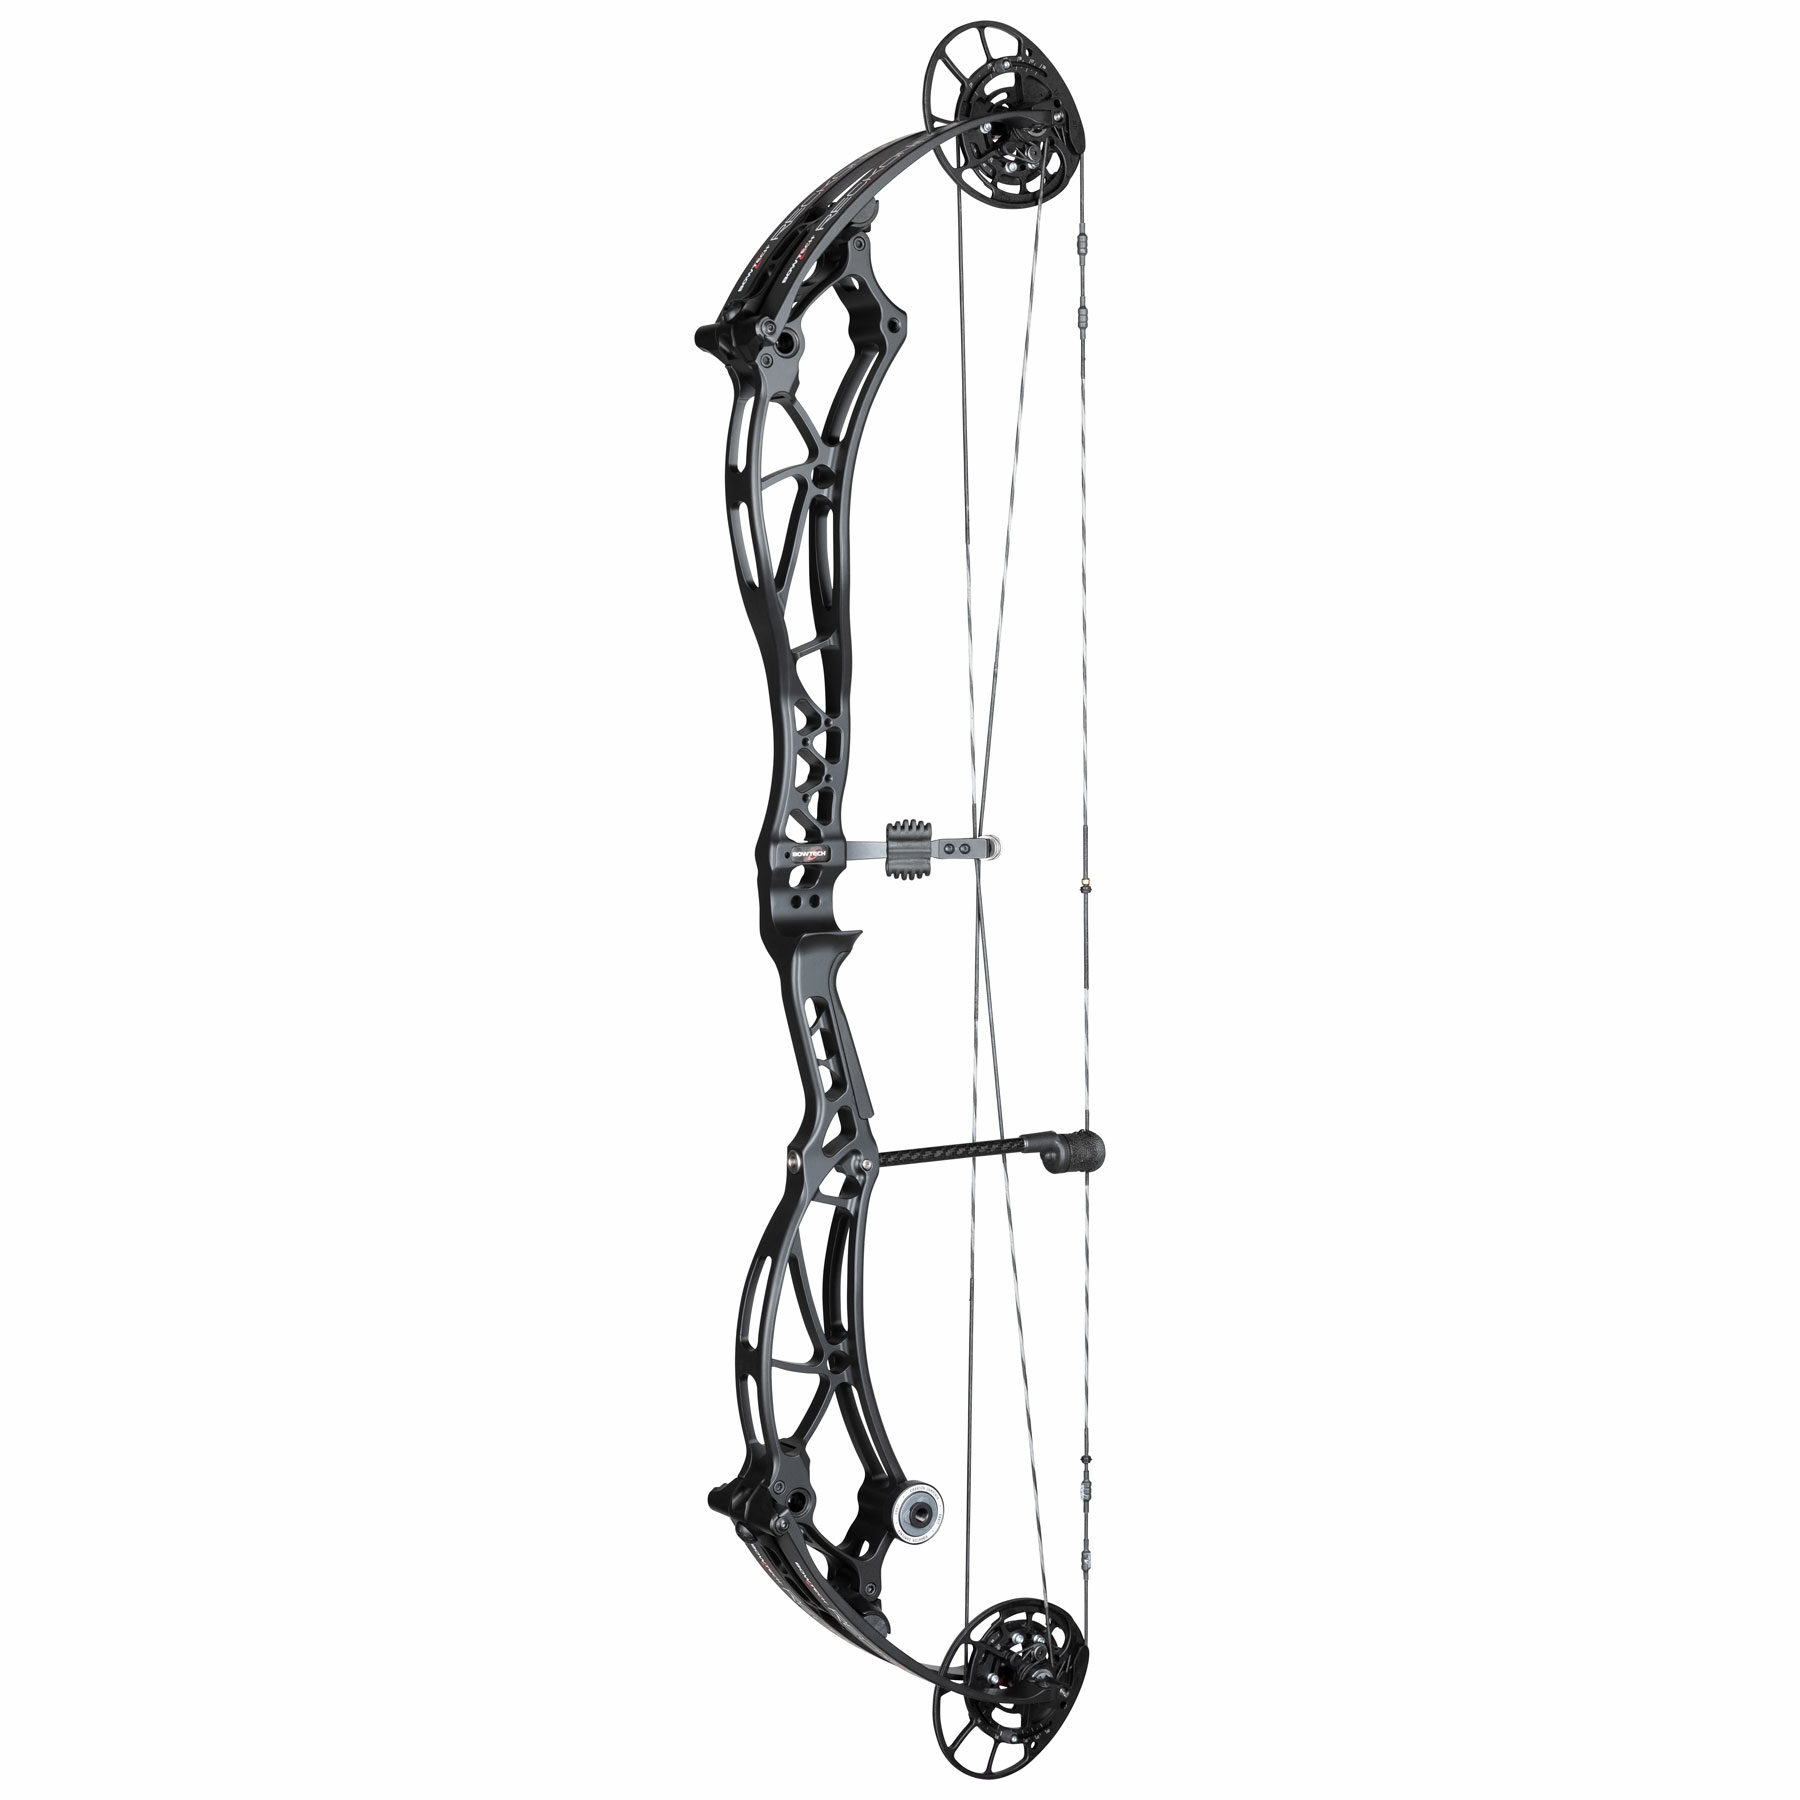 Reckoning 38 black archery compound bow